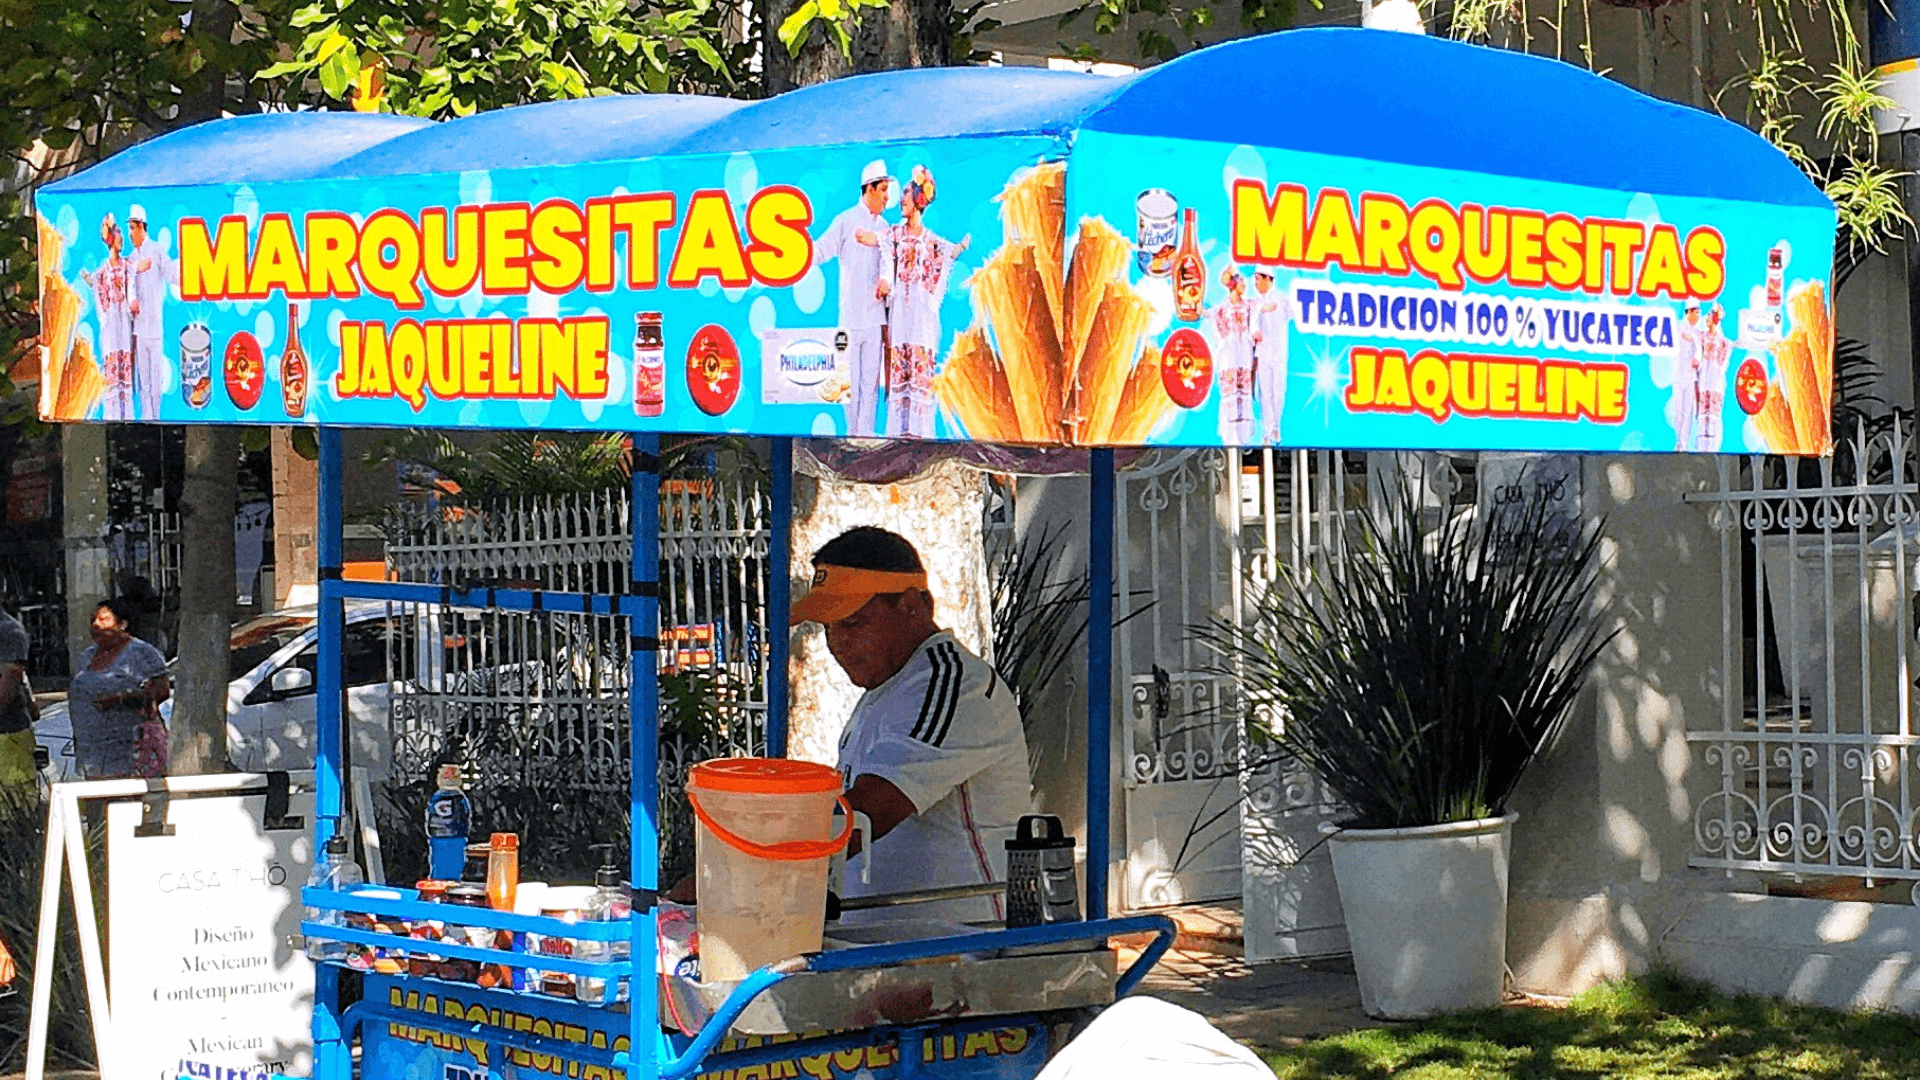 marquesitas cart on the Paseo de Montejo merida mexico